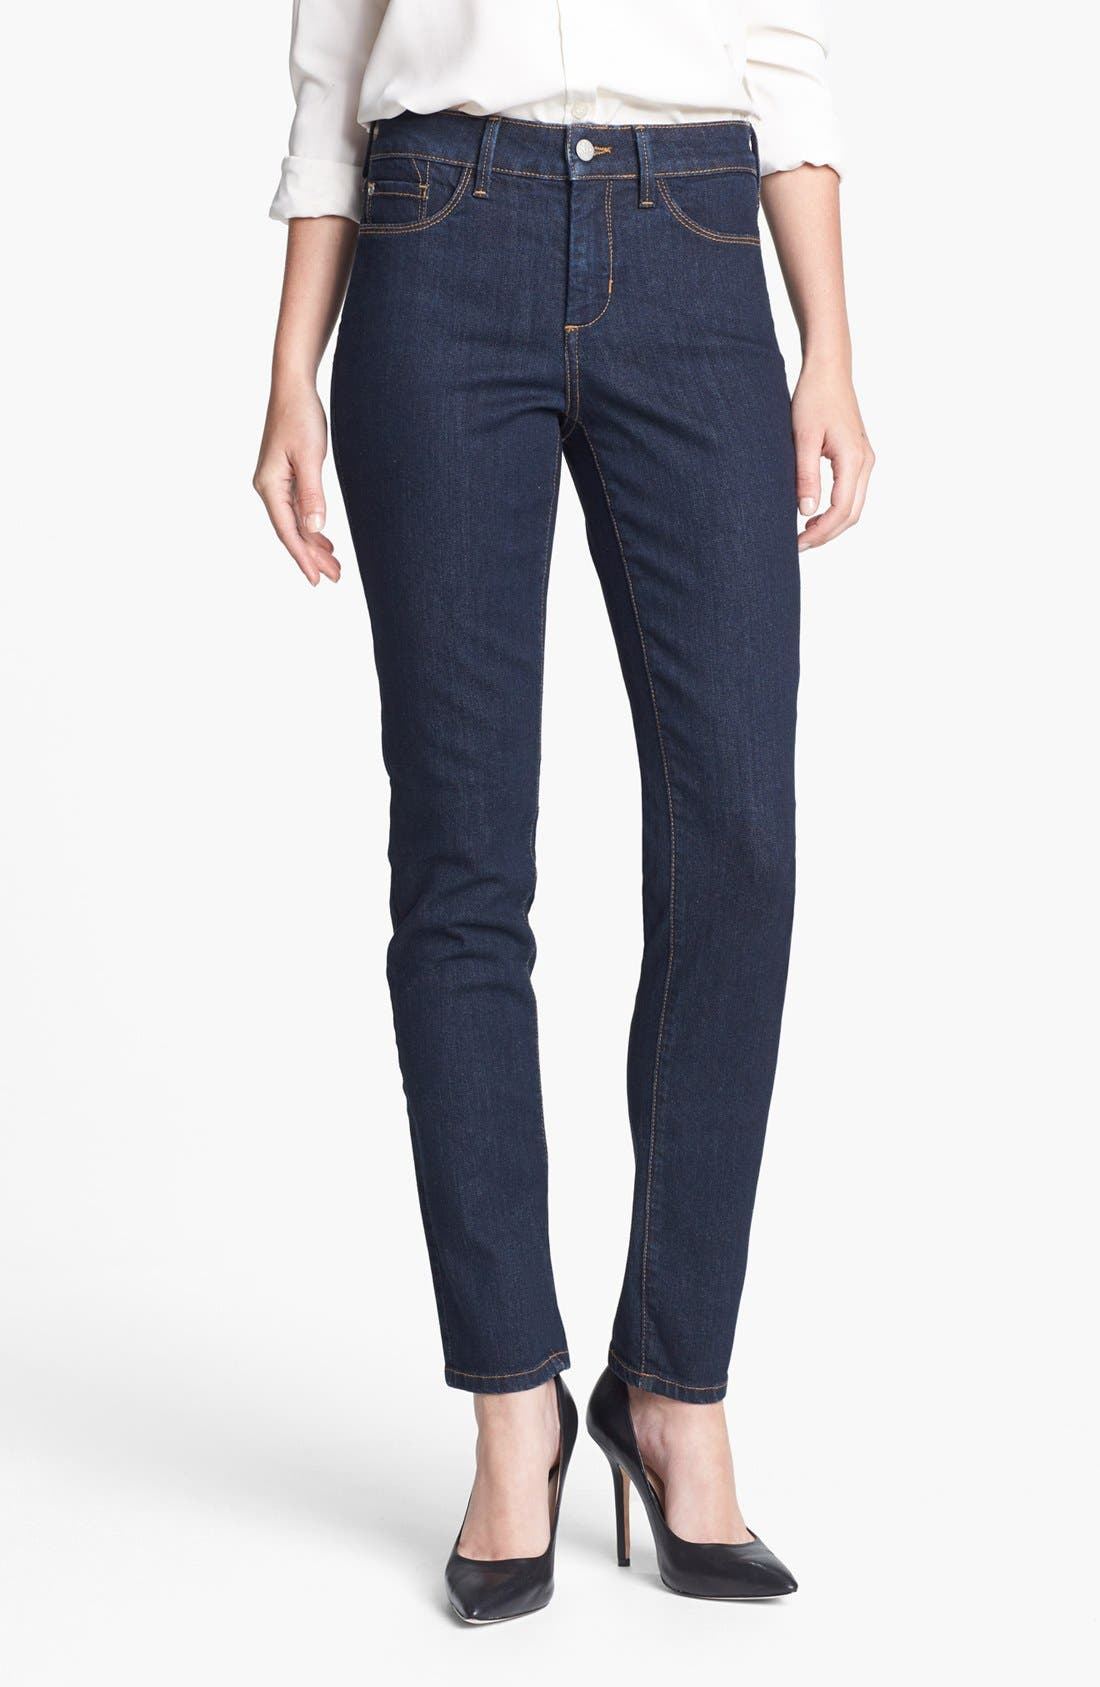 Alternate Image 1 Selected - NYDJ 'Alina' Stretch Skinny Jeans (Larchmont) (Regular & Petite)